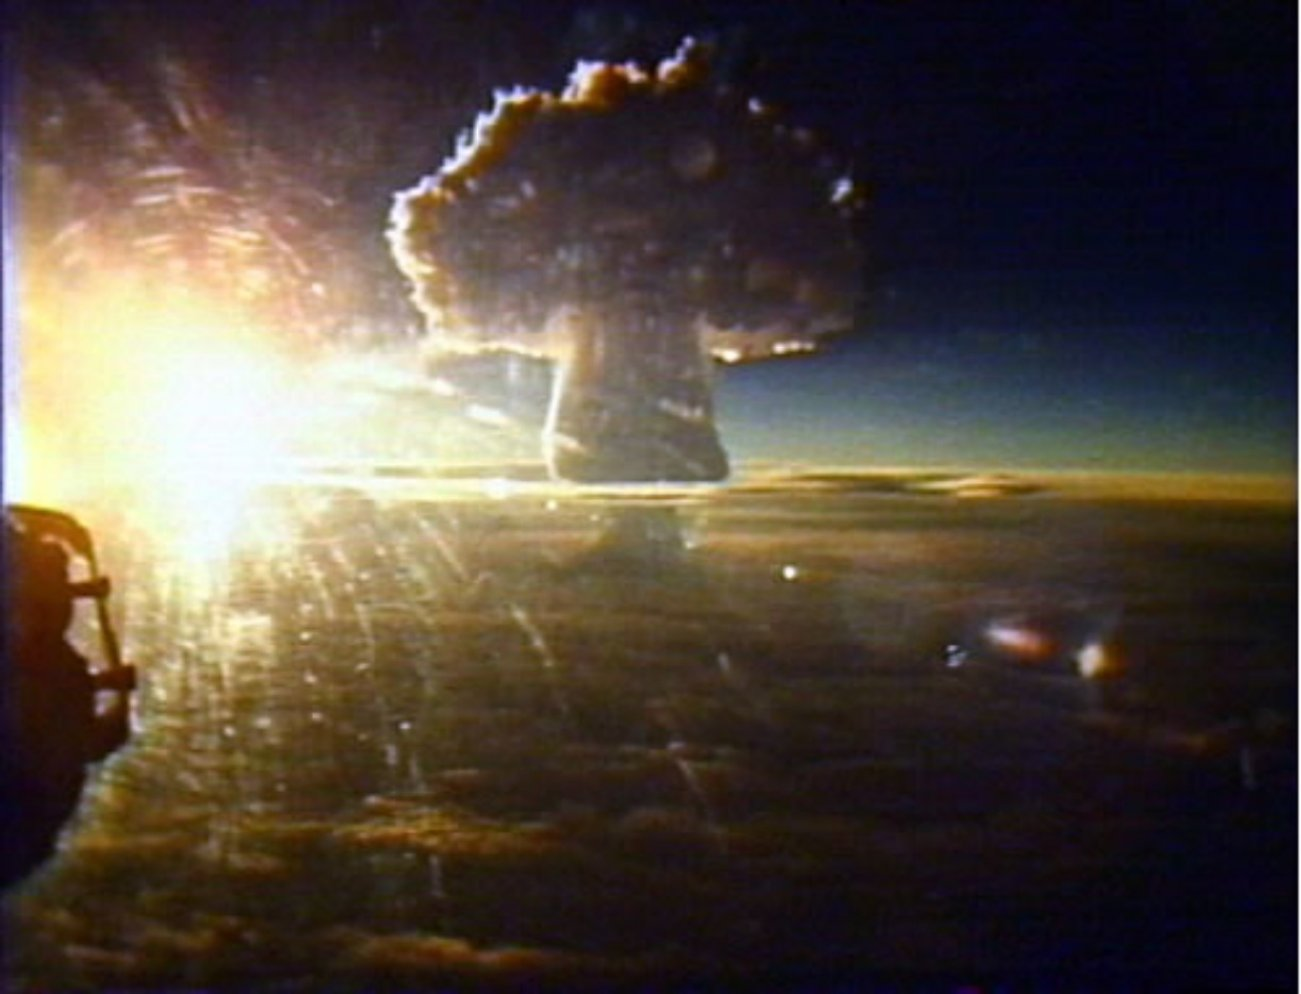 Now We Have Video of the Biggest Nuclear Explosion in History